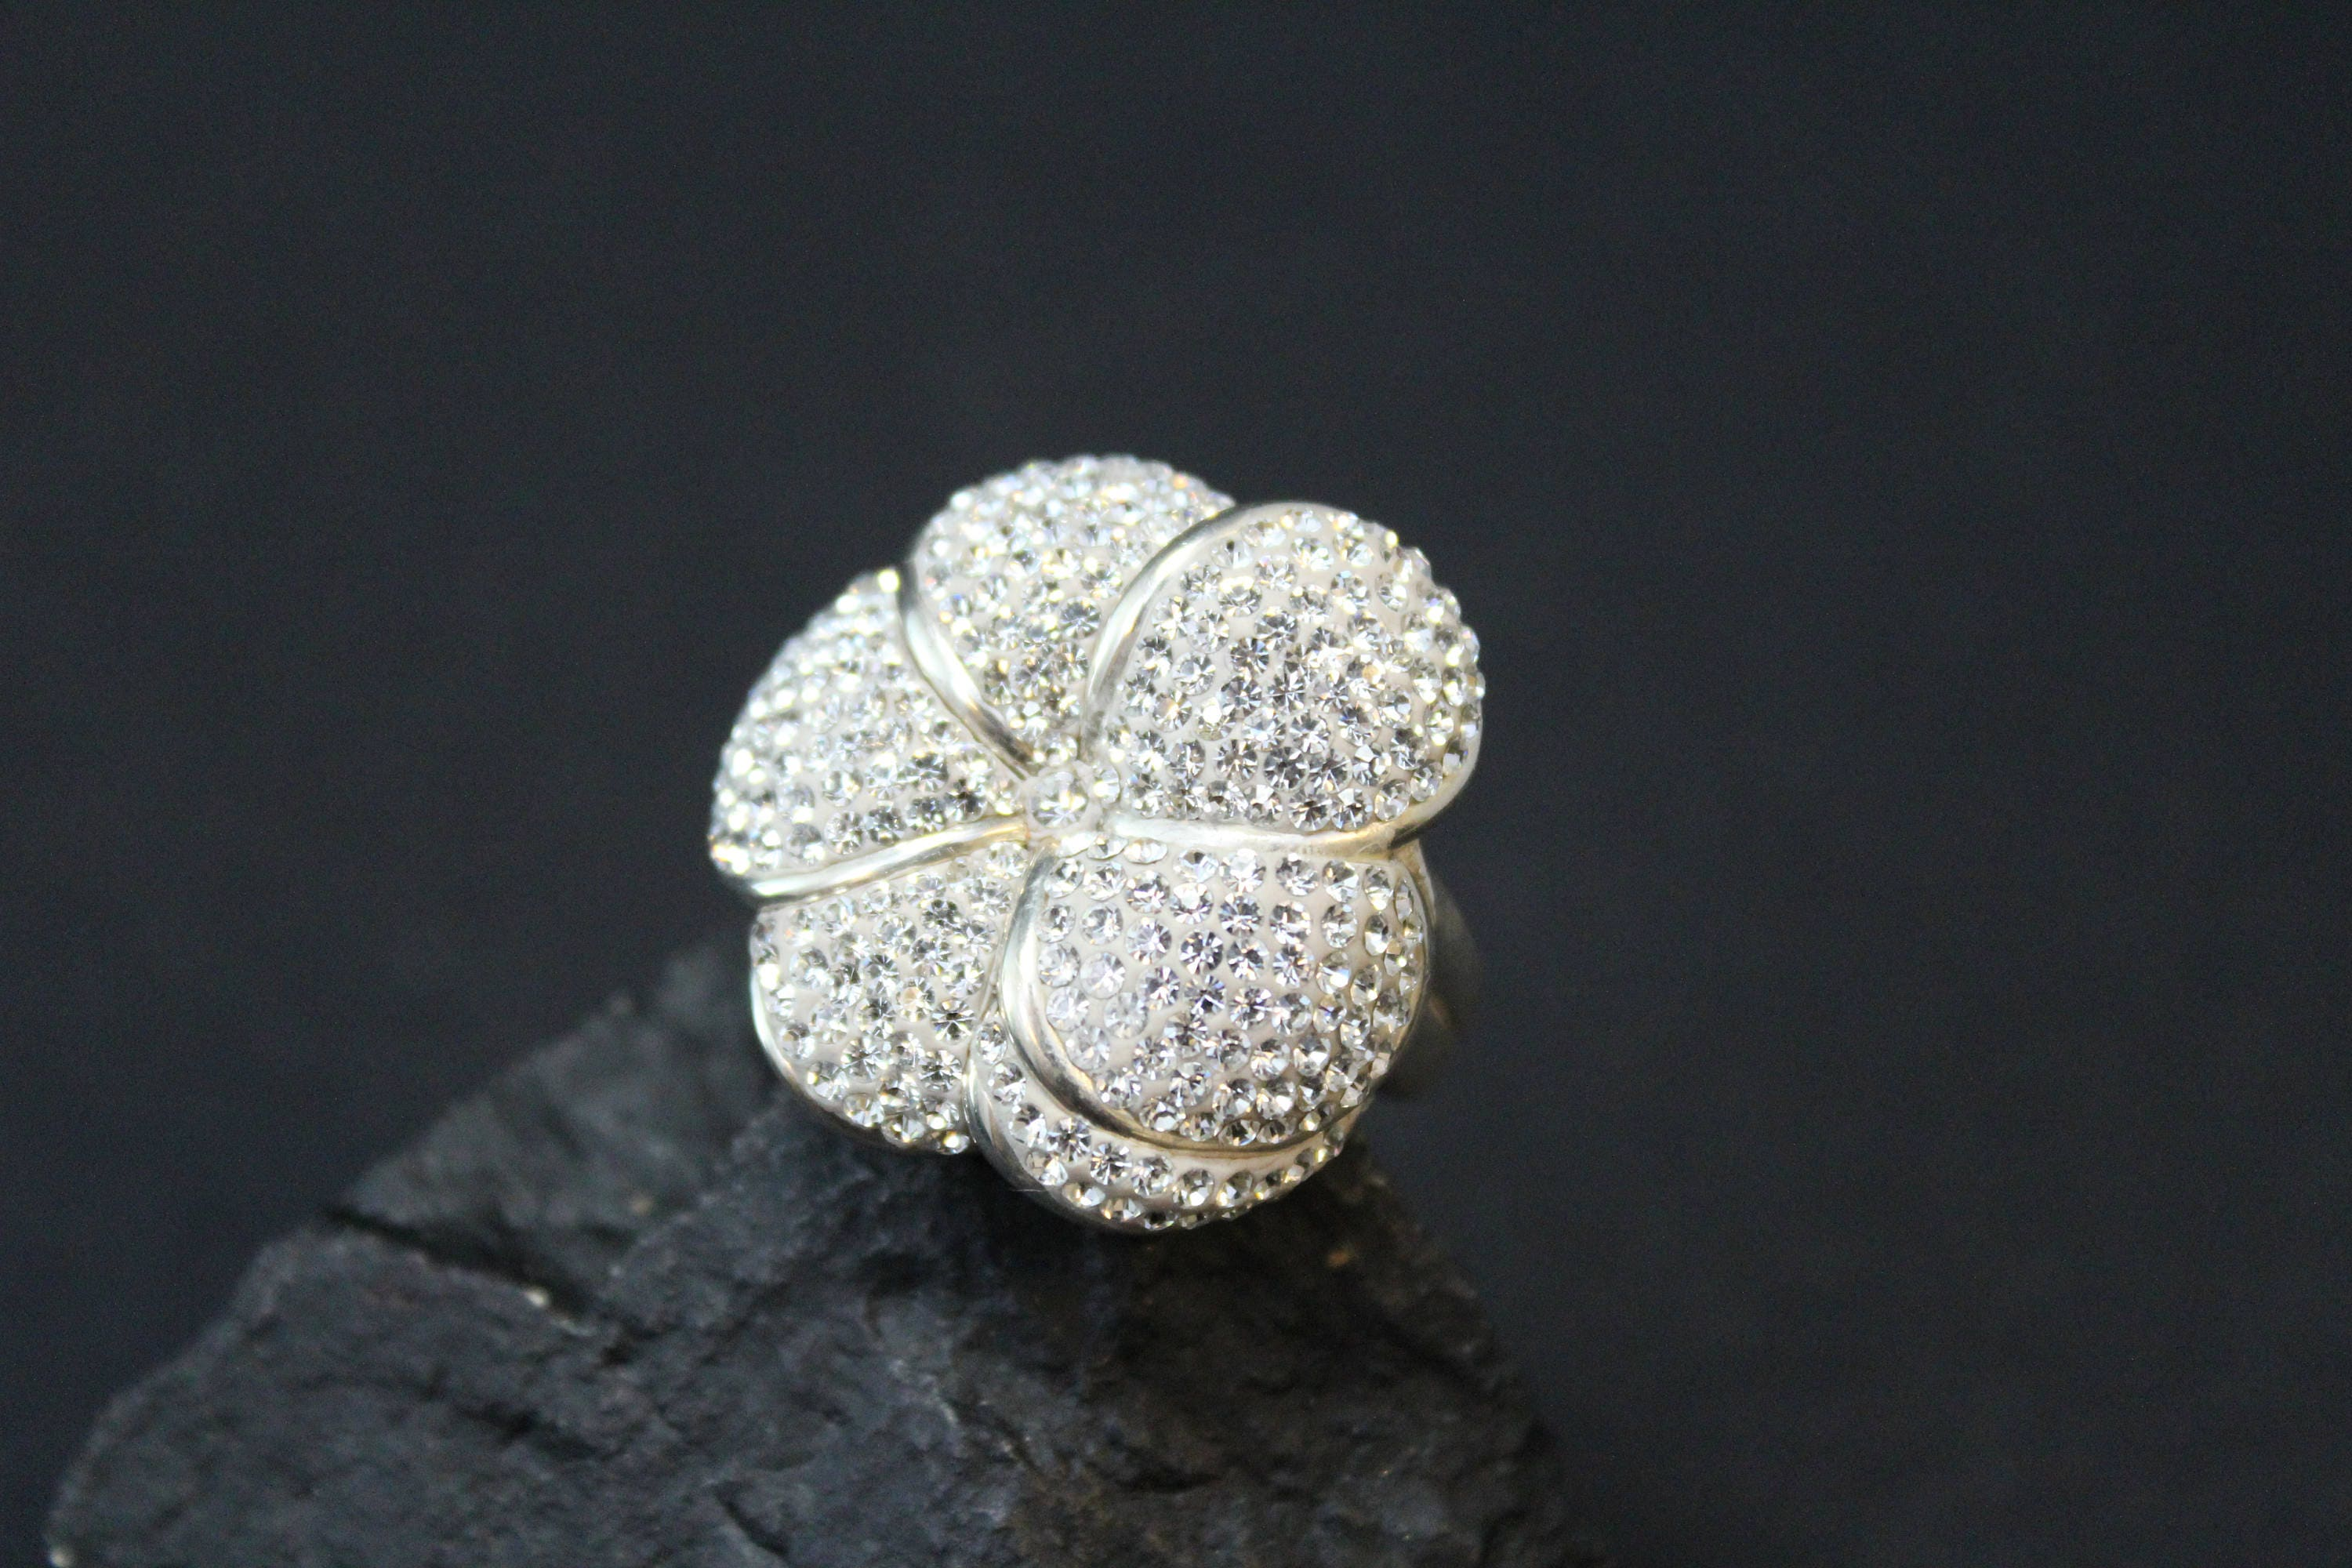 Sterling silver pave crystal flower ring sterling silver hawaiian sterling silver pave crystal flower ring sterling silver hawaiian flower ring sterling plumeria ring big sterling flower ring izmirmasajfo